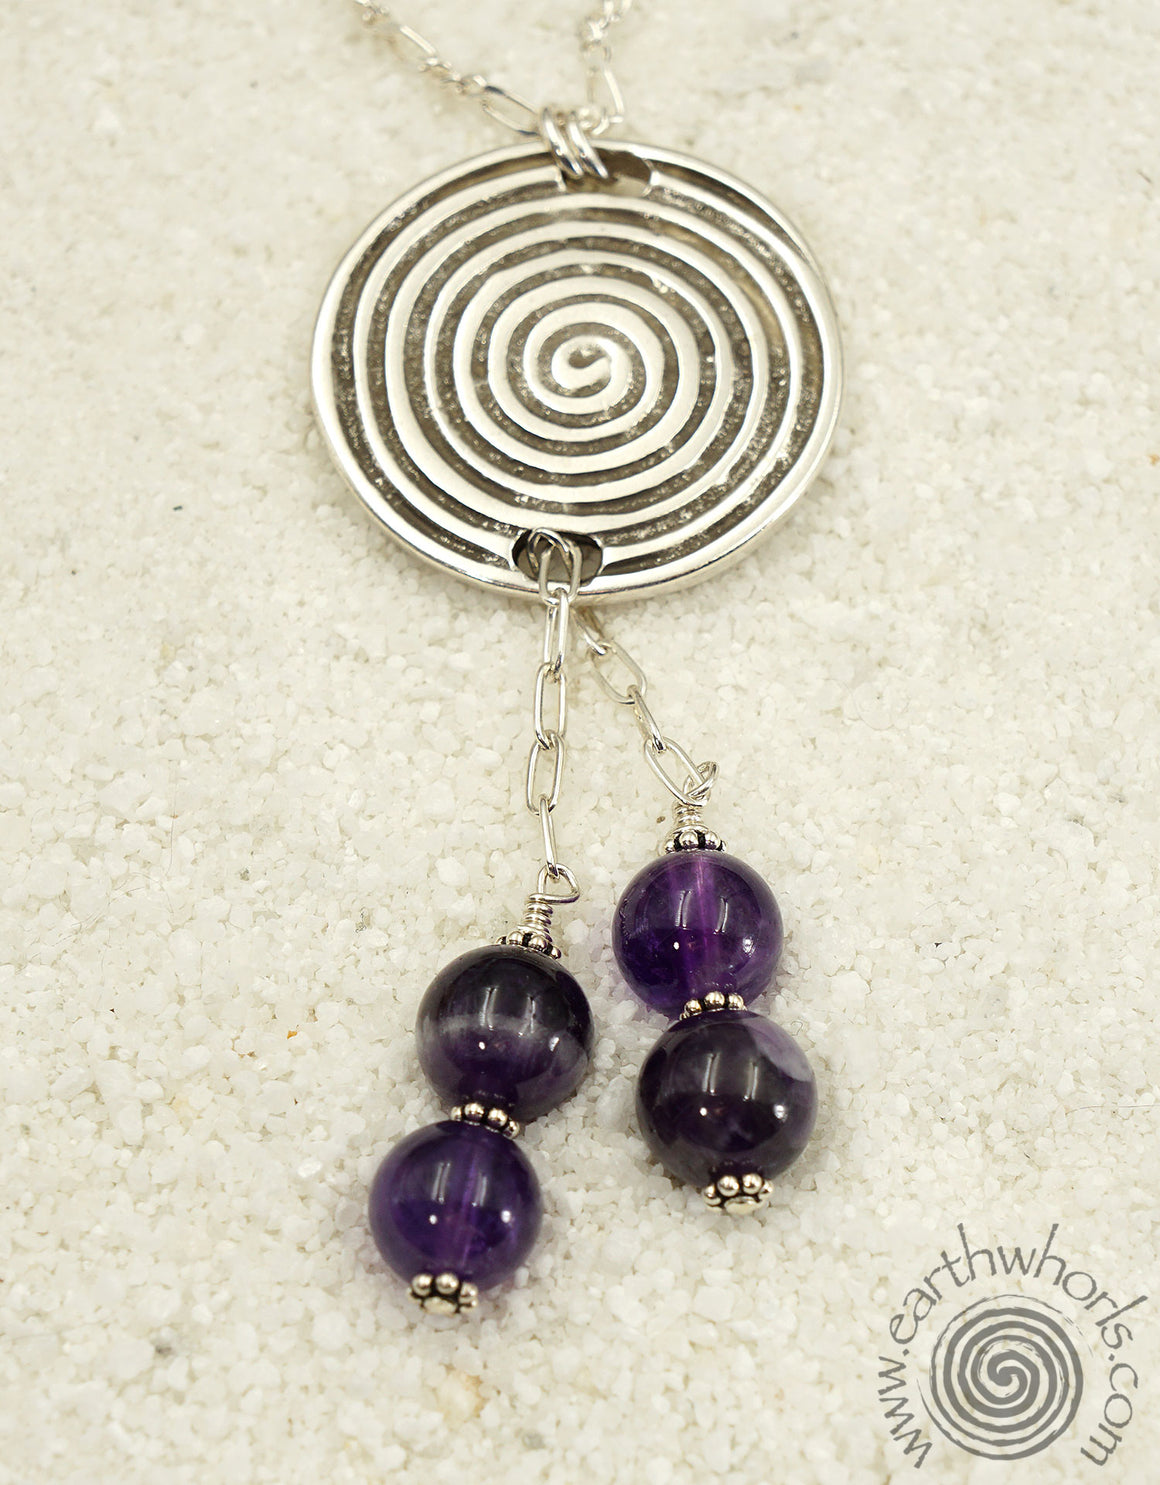 Sterling Silver, Handcrafted Metal & Amethyst Pendant Necklace - EarthWhorls, LLC